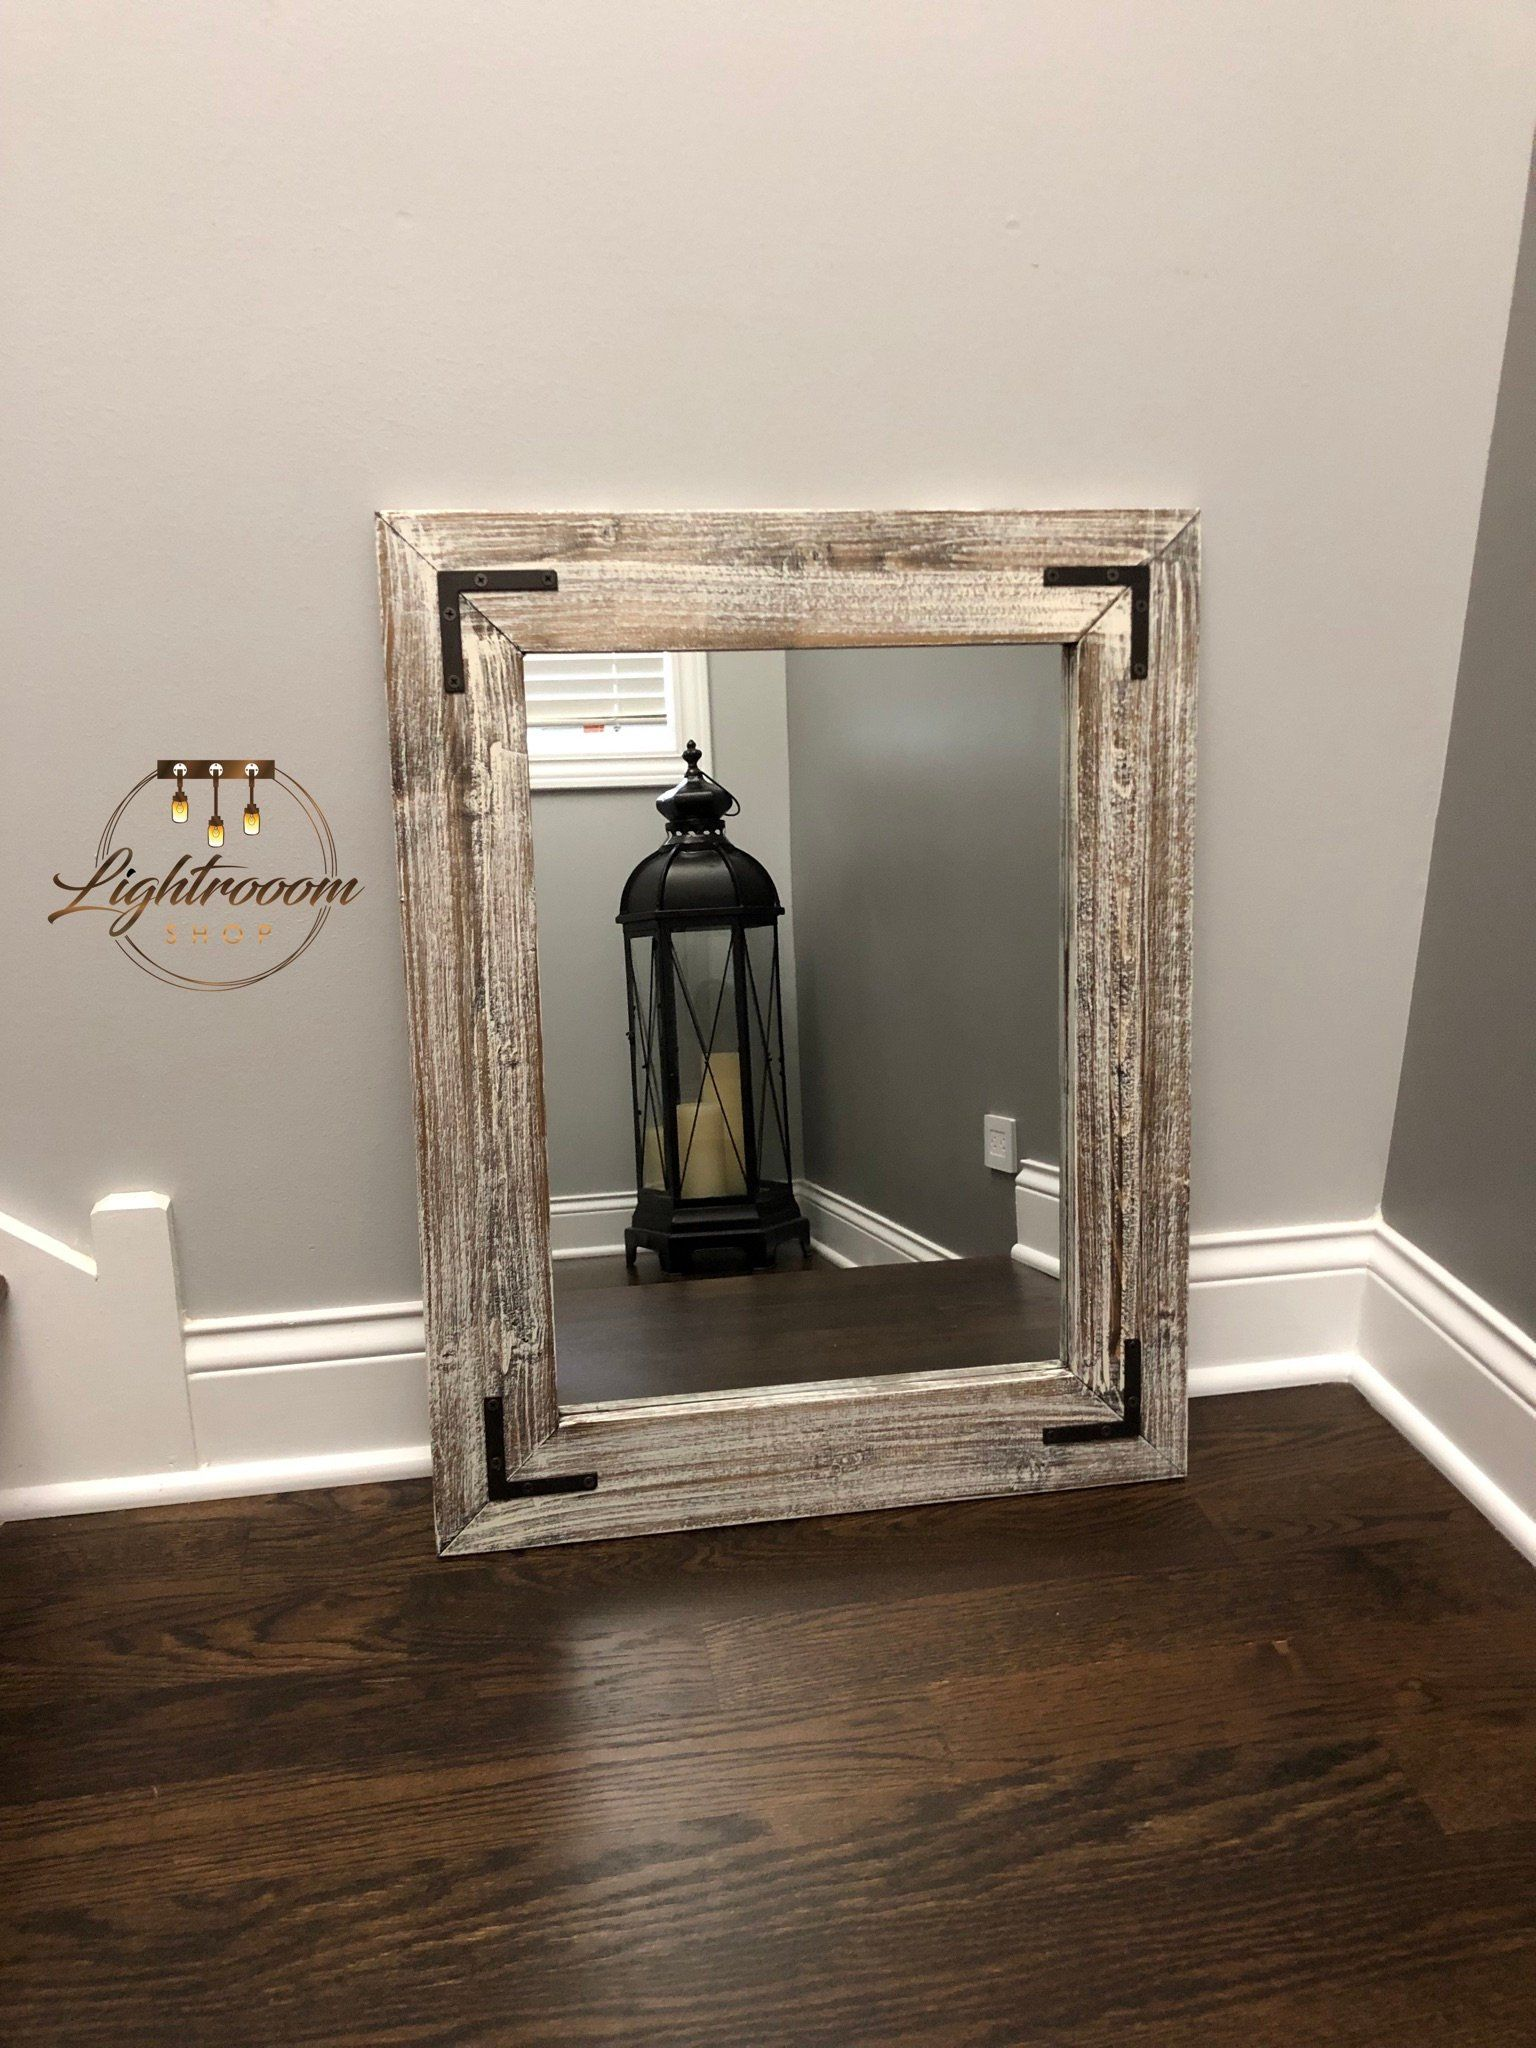 Antique White Bathroom Wood Mirror Farmhouse Decor Rustic Mirrors Wall Floor Mirrors Framed Mirror Vintage Vintage Mirror Wall Rustic Mirrors Wood Mirror